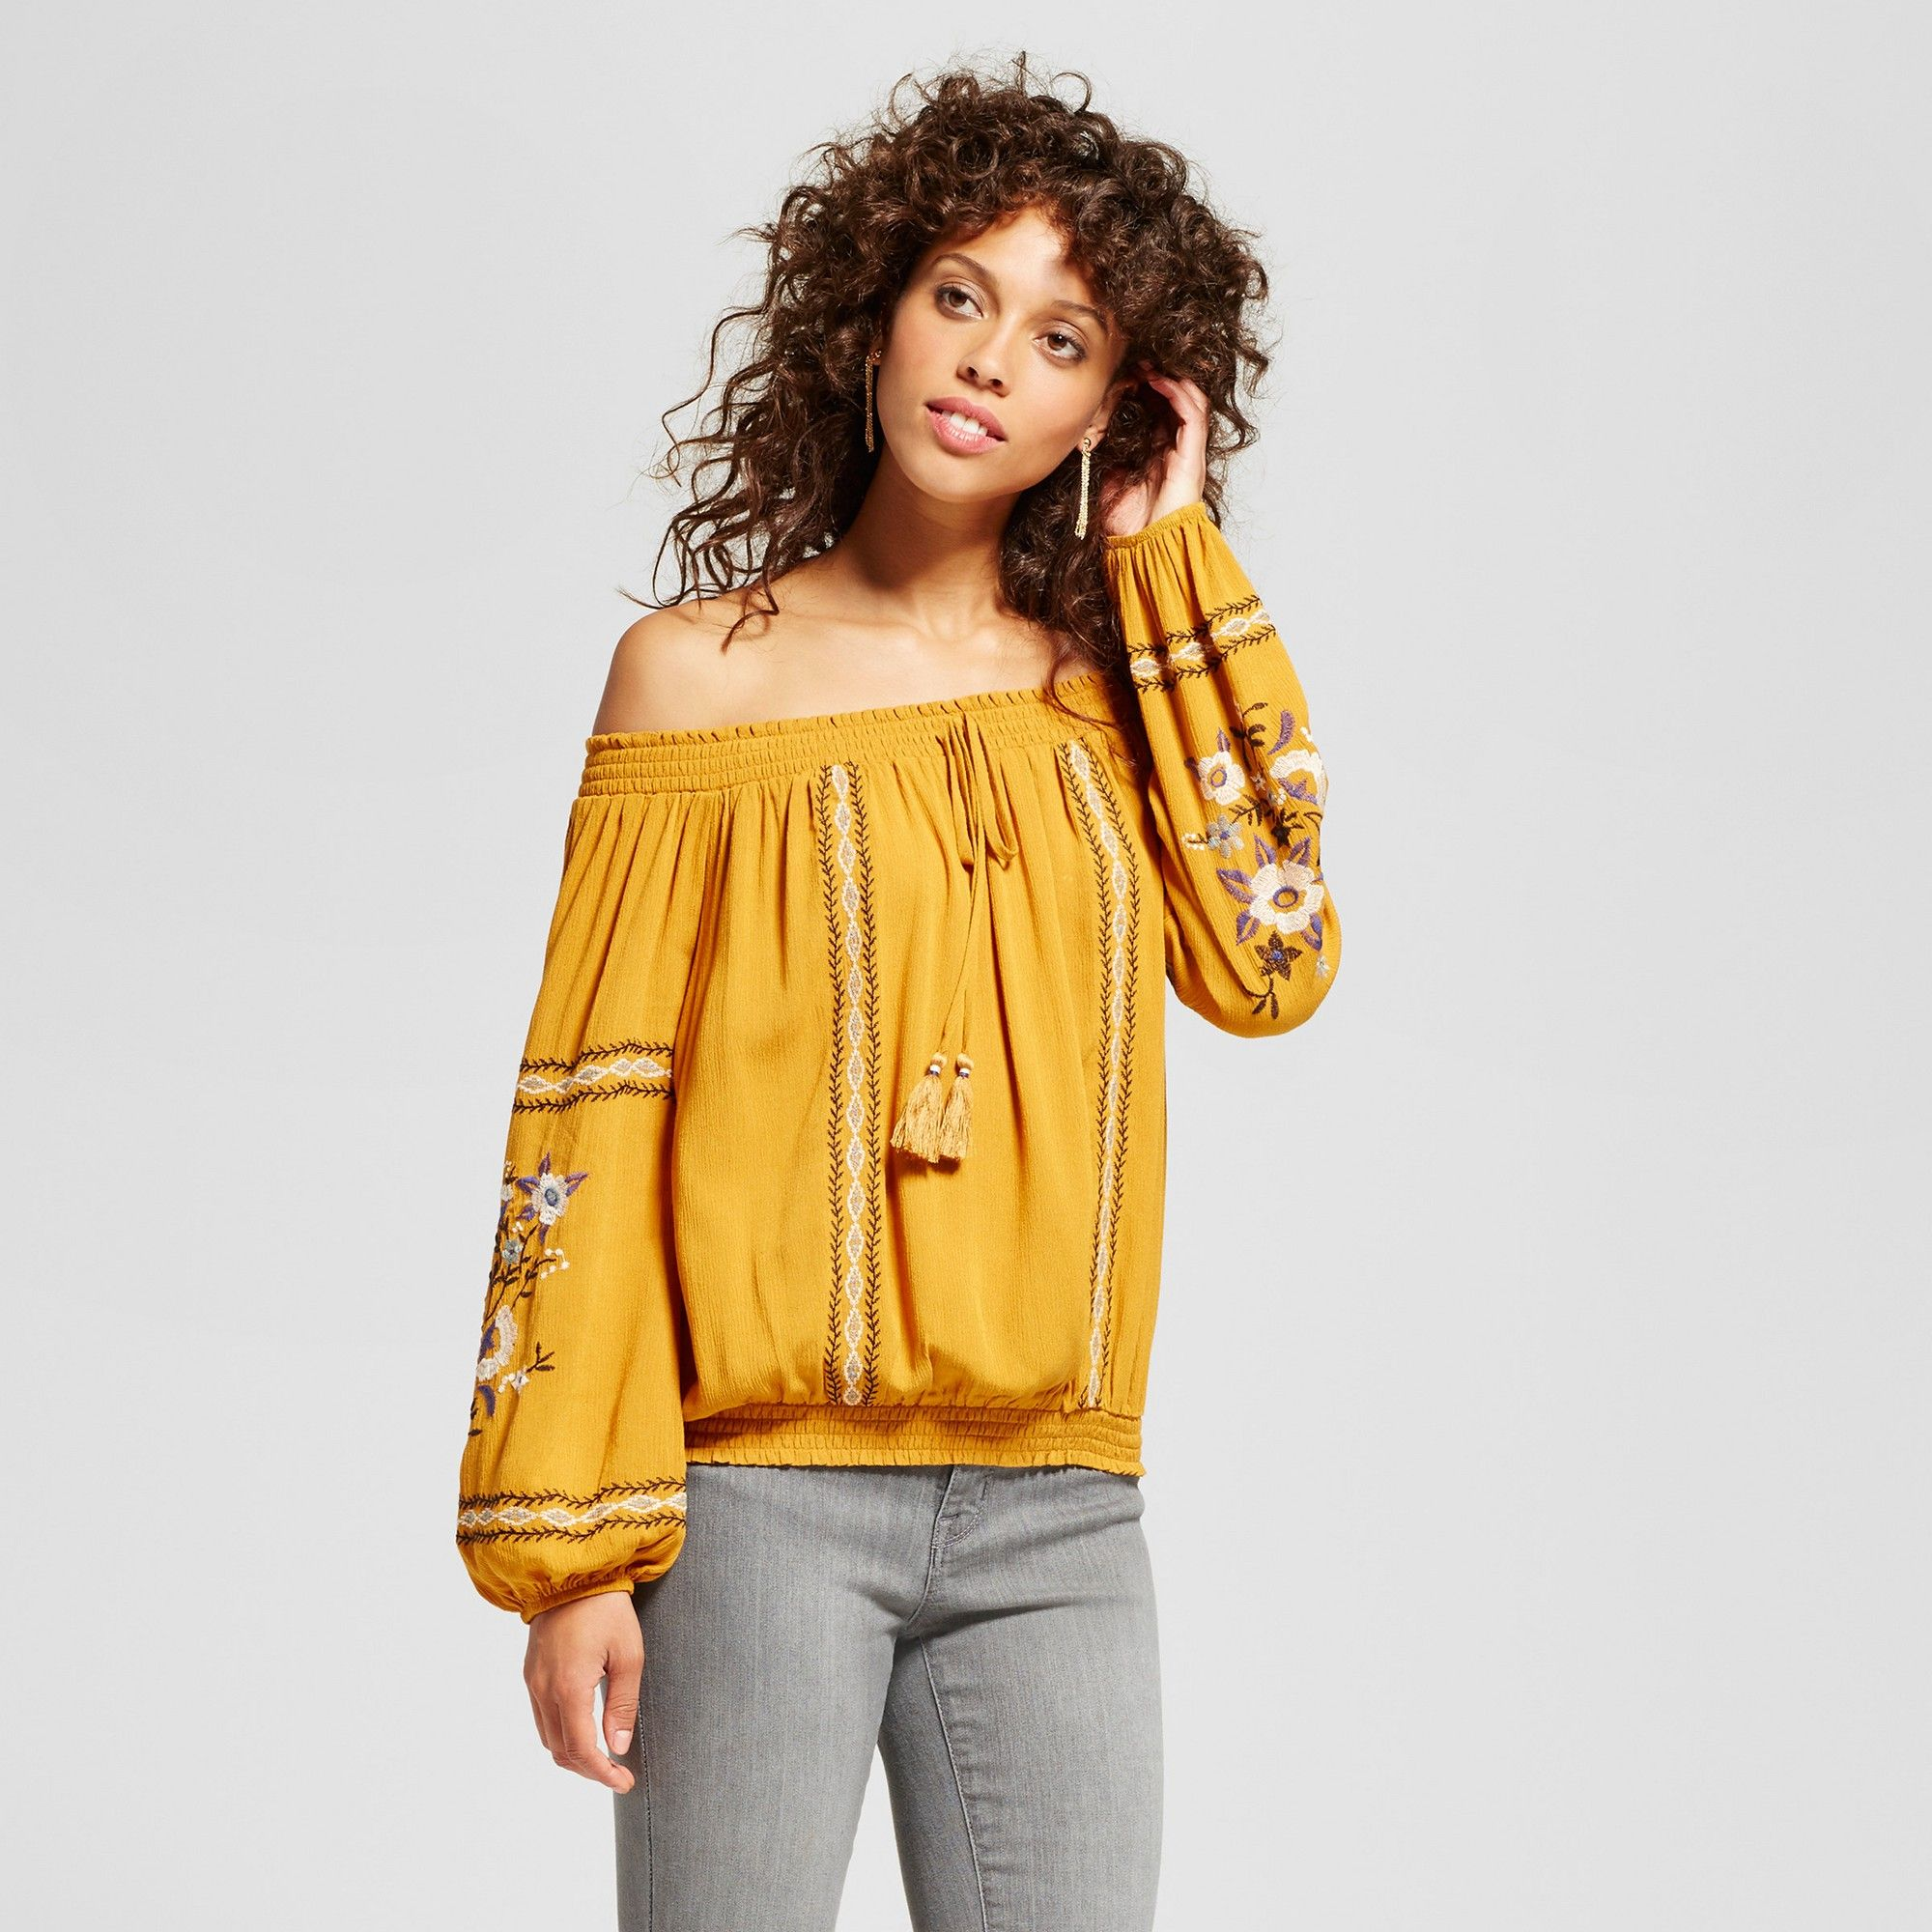 c108452150be8 Women s Embroidered Smocked Off the Shoulder Top - Xhilaration (Juniors )  Gold Xxl